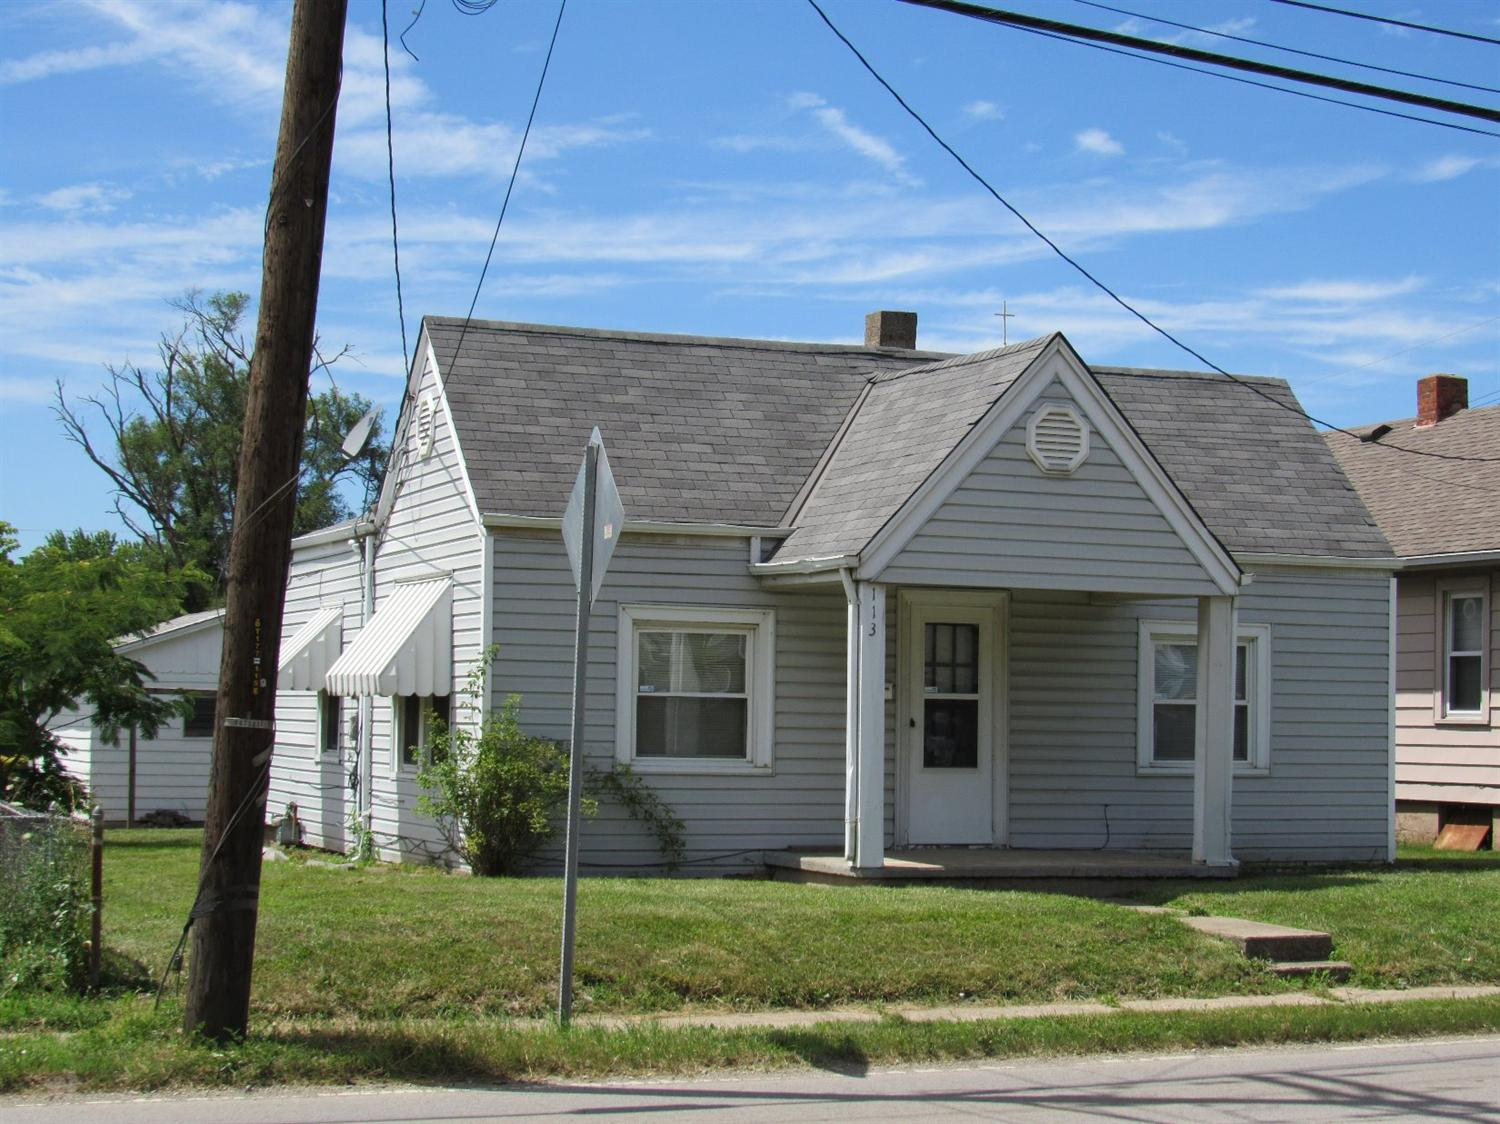 113 S Riverside Dr St Clair Twp Oh 45011 Listing